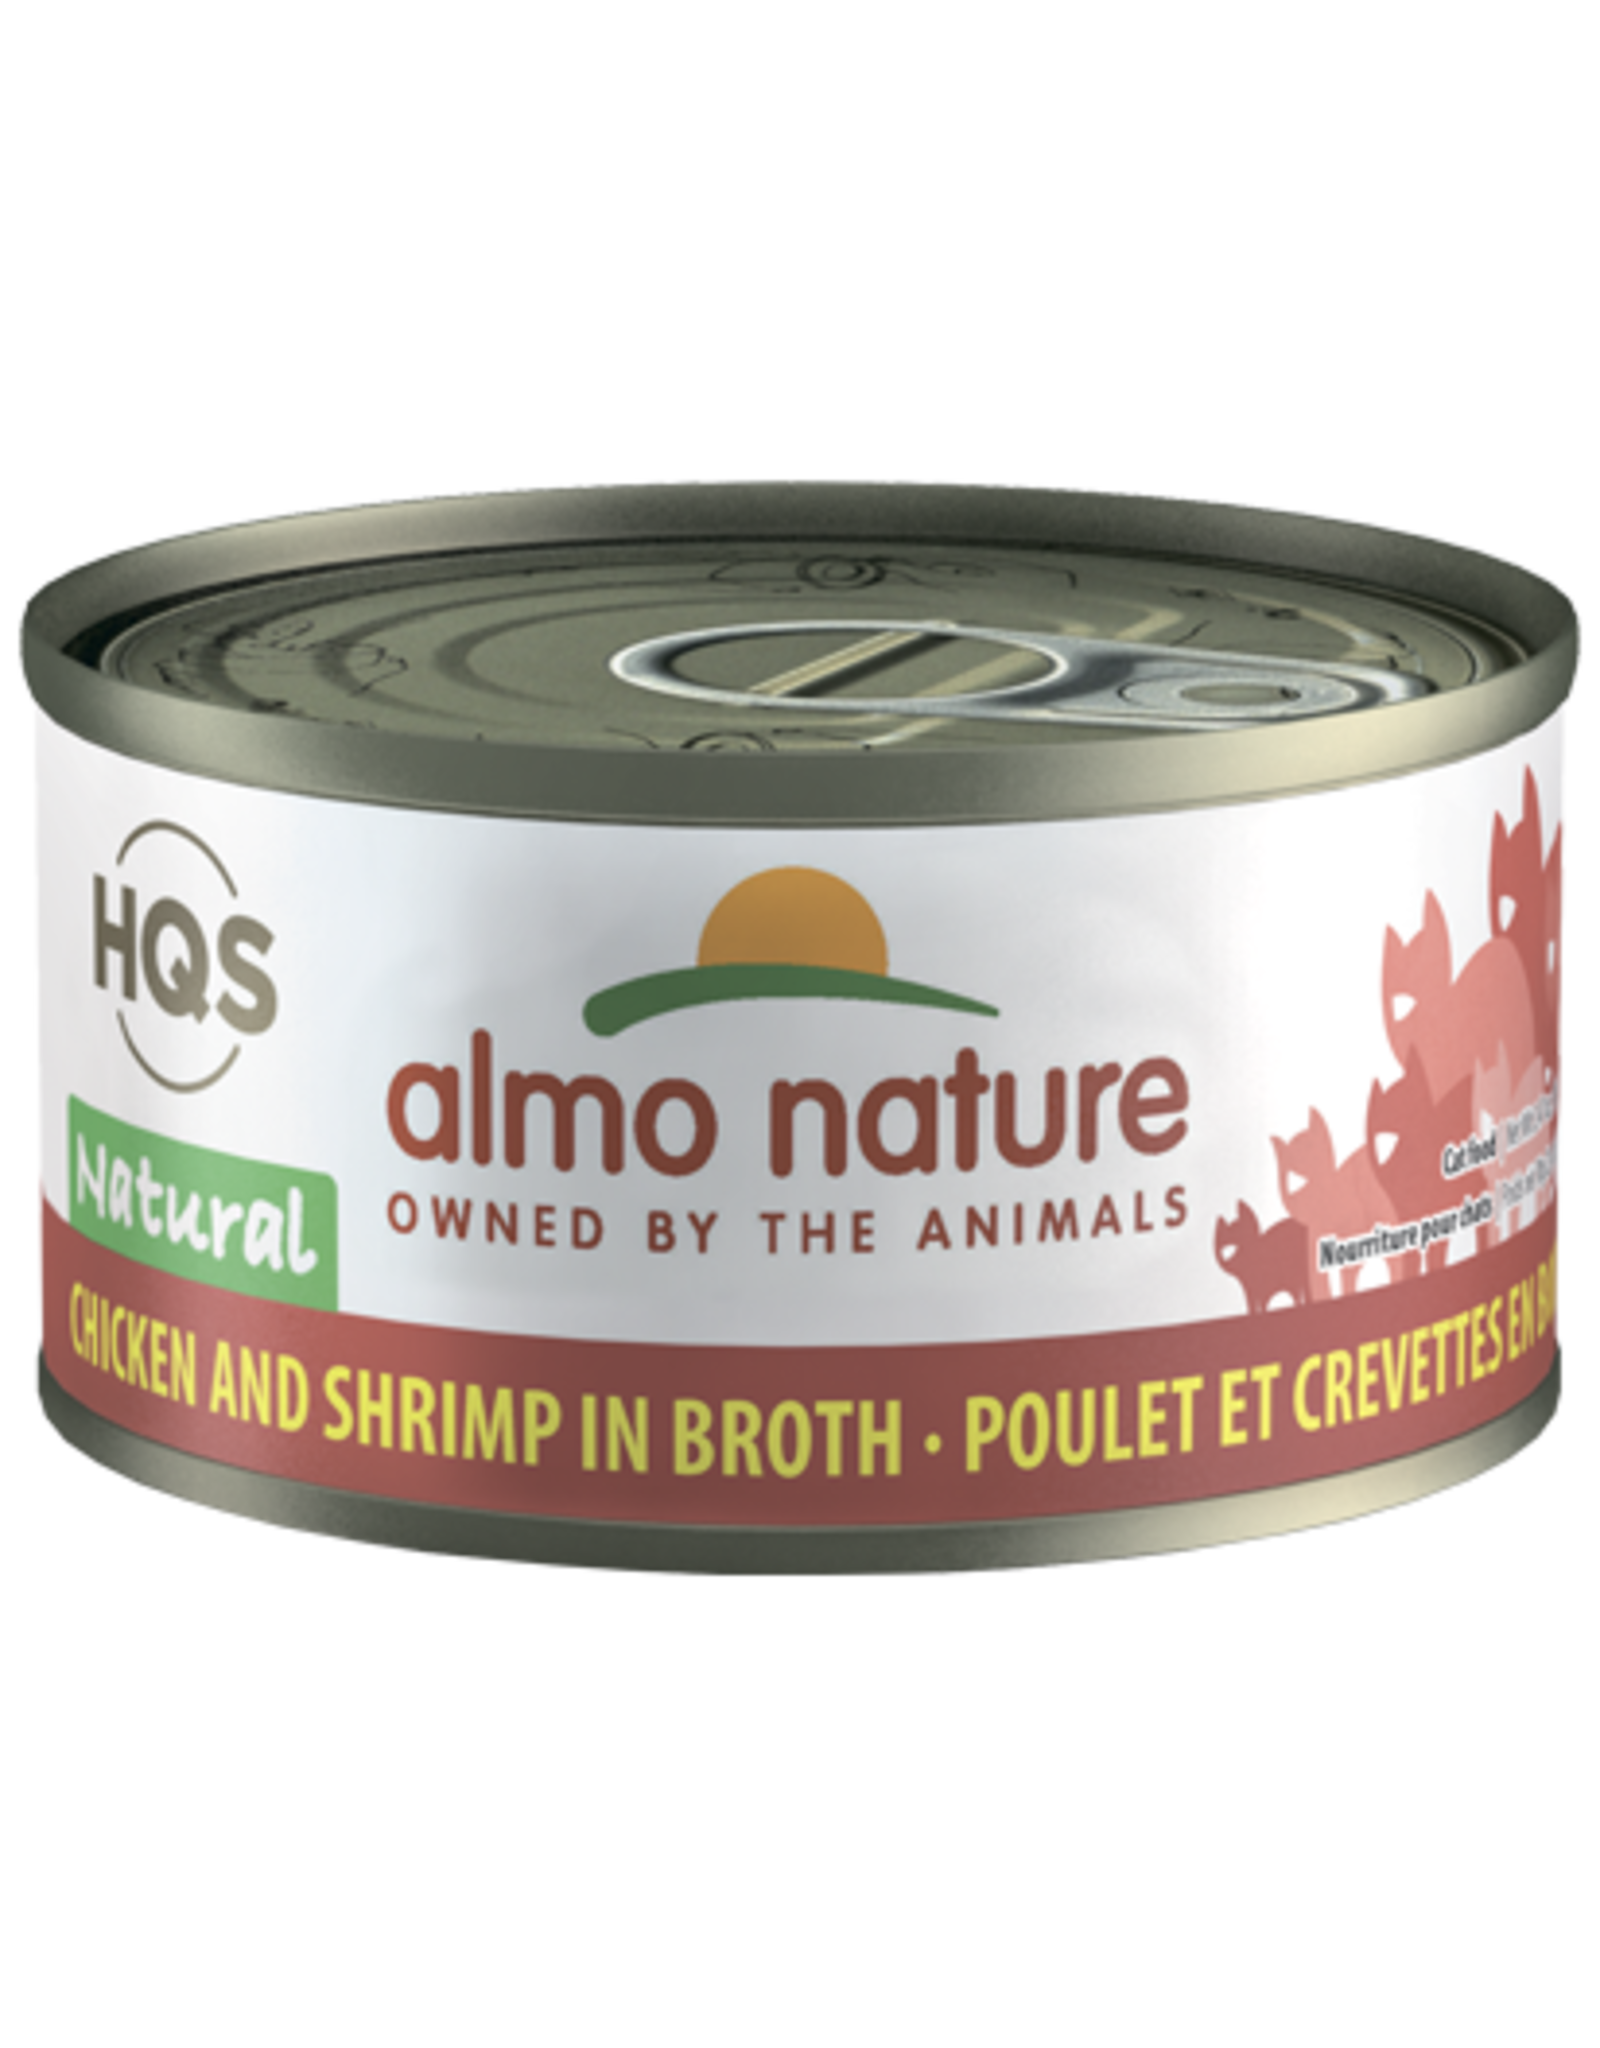 Almo Nature Almo Nature HQS Natural Wet Cat Food Chicken and Shrimp in Broth 2.47oz Can Grain Free